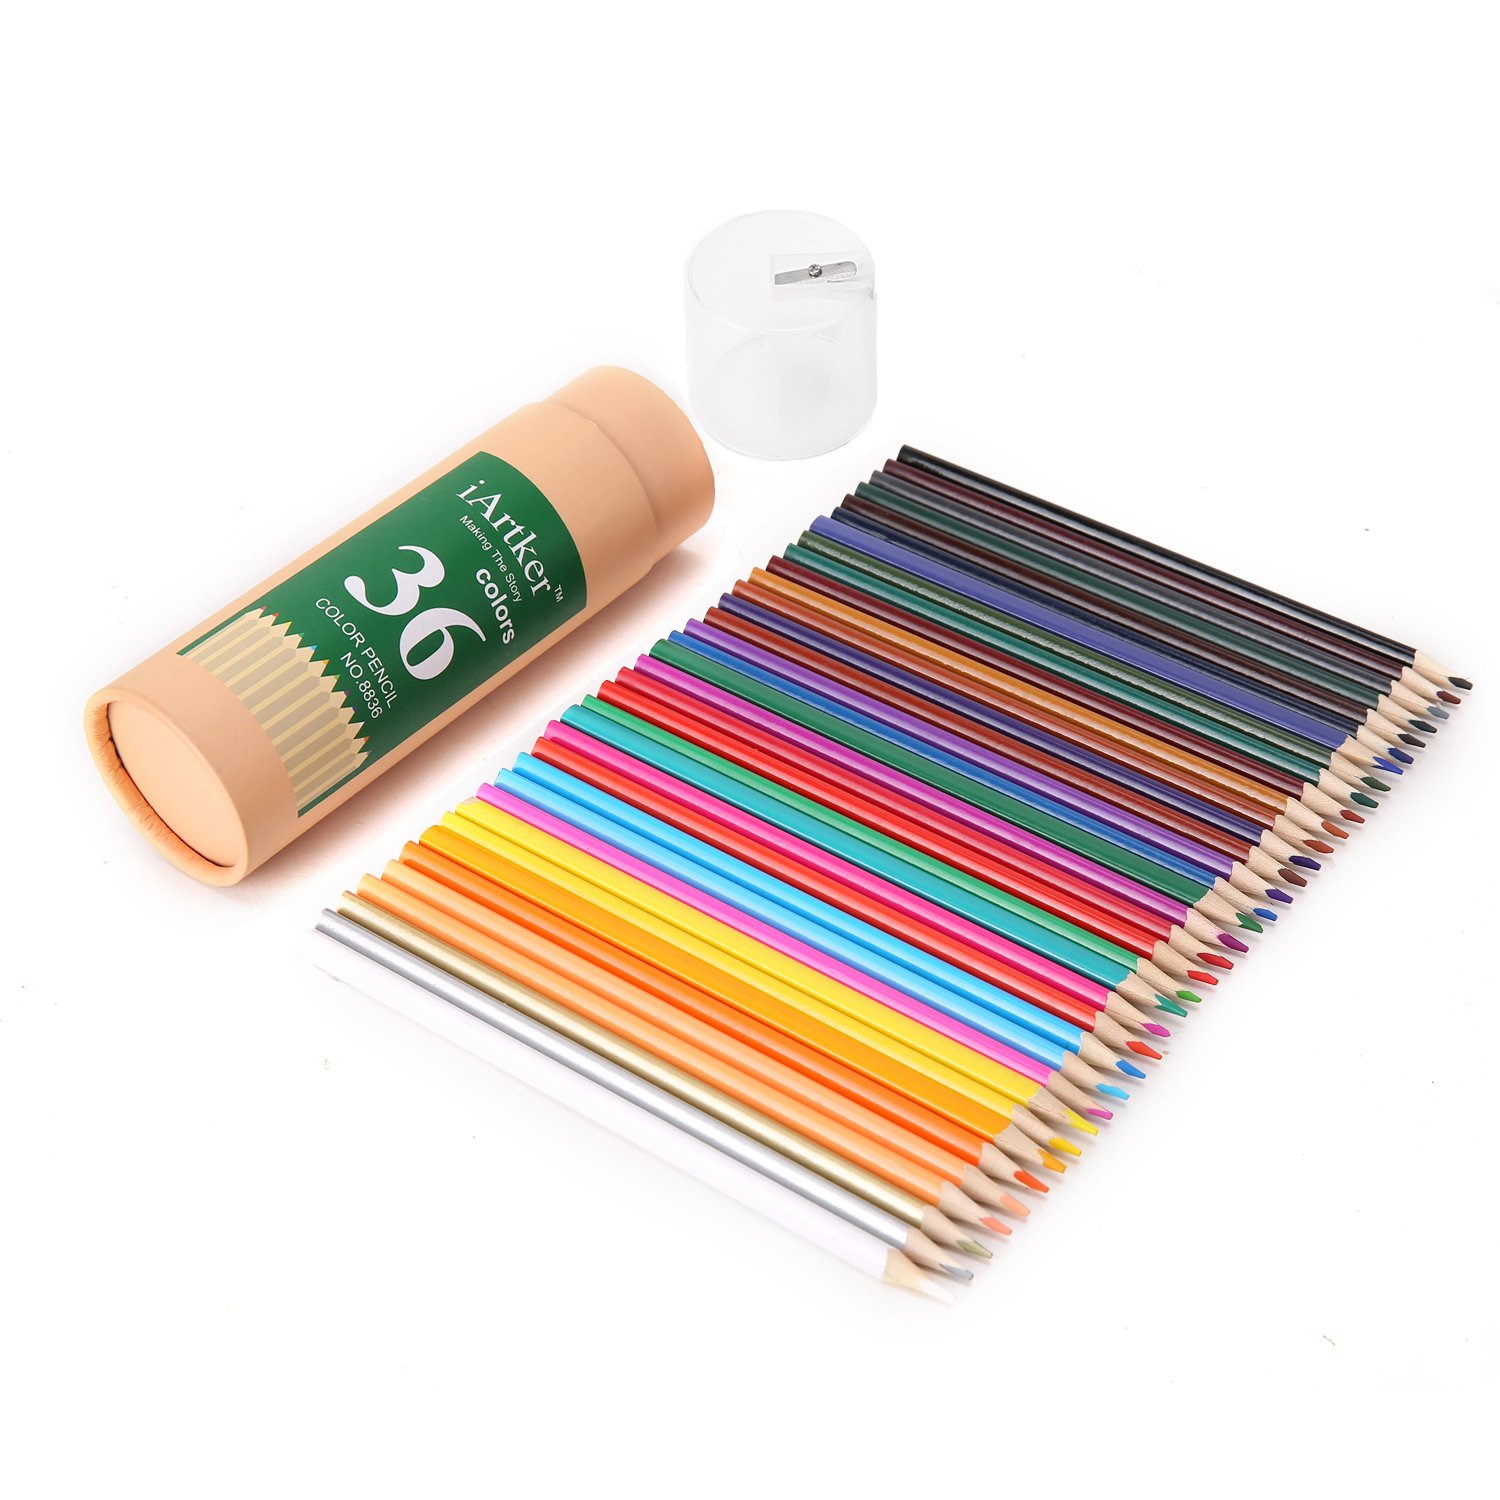 iArtker Long Triangular Drawing Pencils/Colored Pencils Set of 36 Assorted in Vase Tubular Package with a Lid Contains a High Quality Sharpener